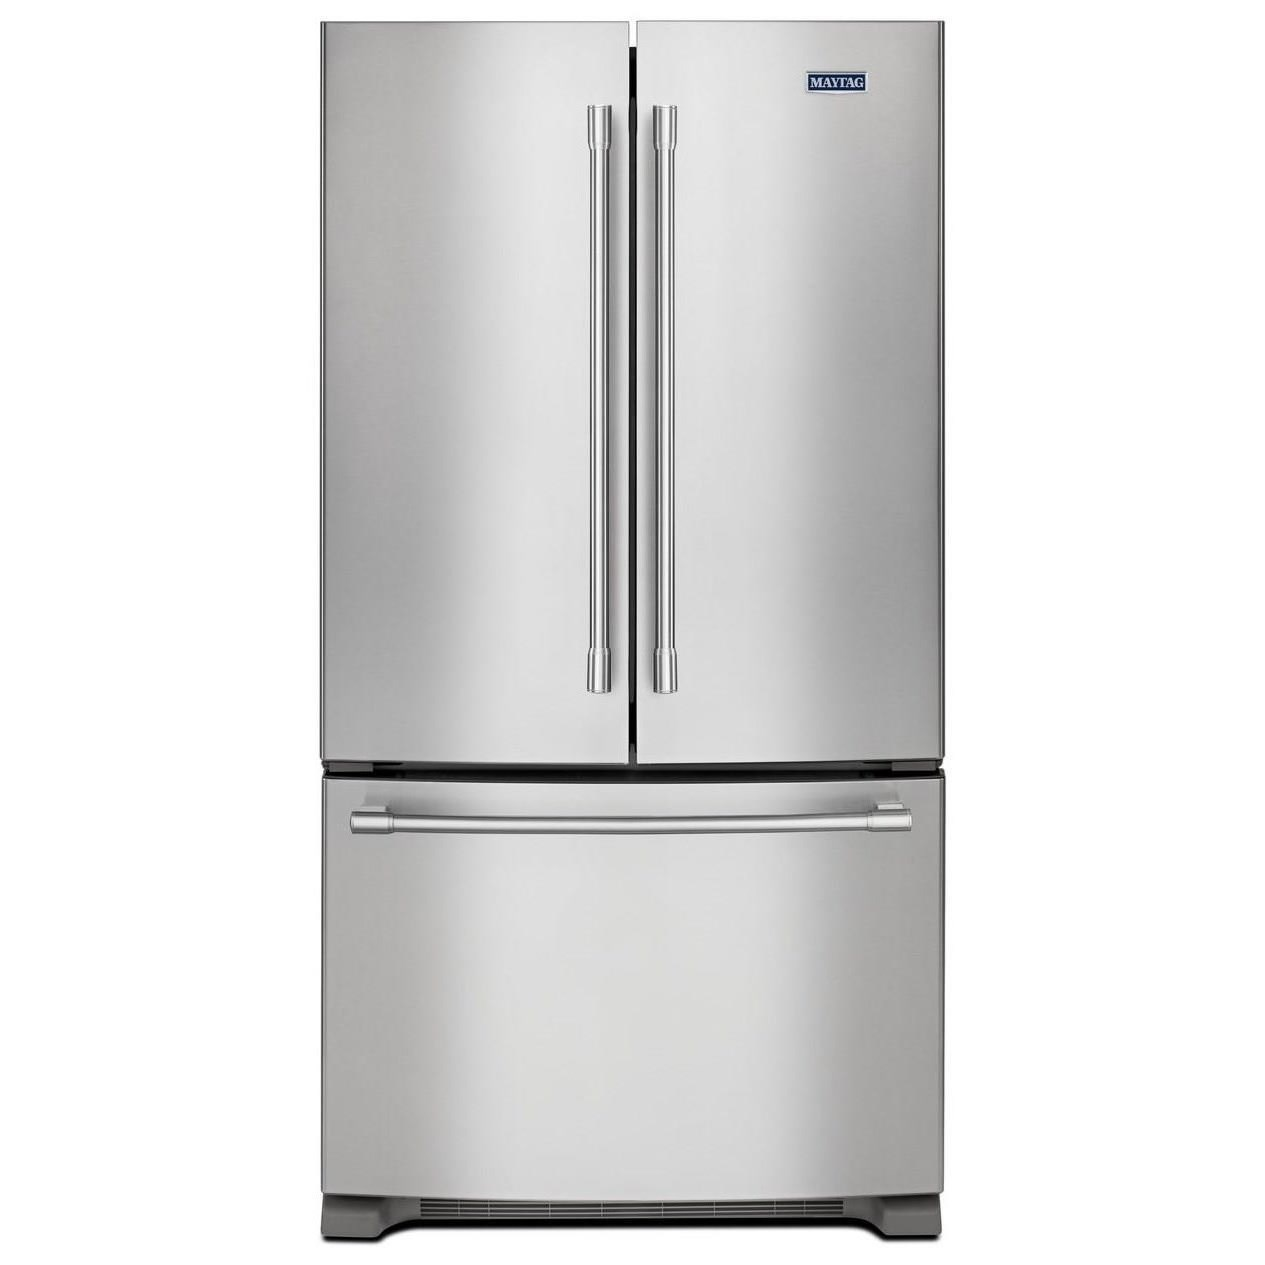 36  Inch Wide Counter Depth French Door Refrigerator   20 Cu. Ft. By Maytag